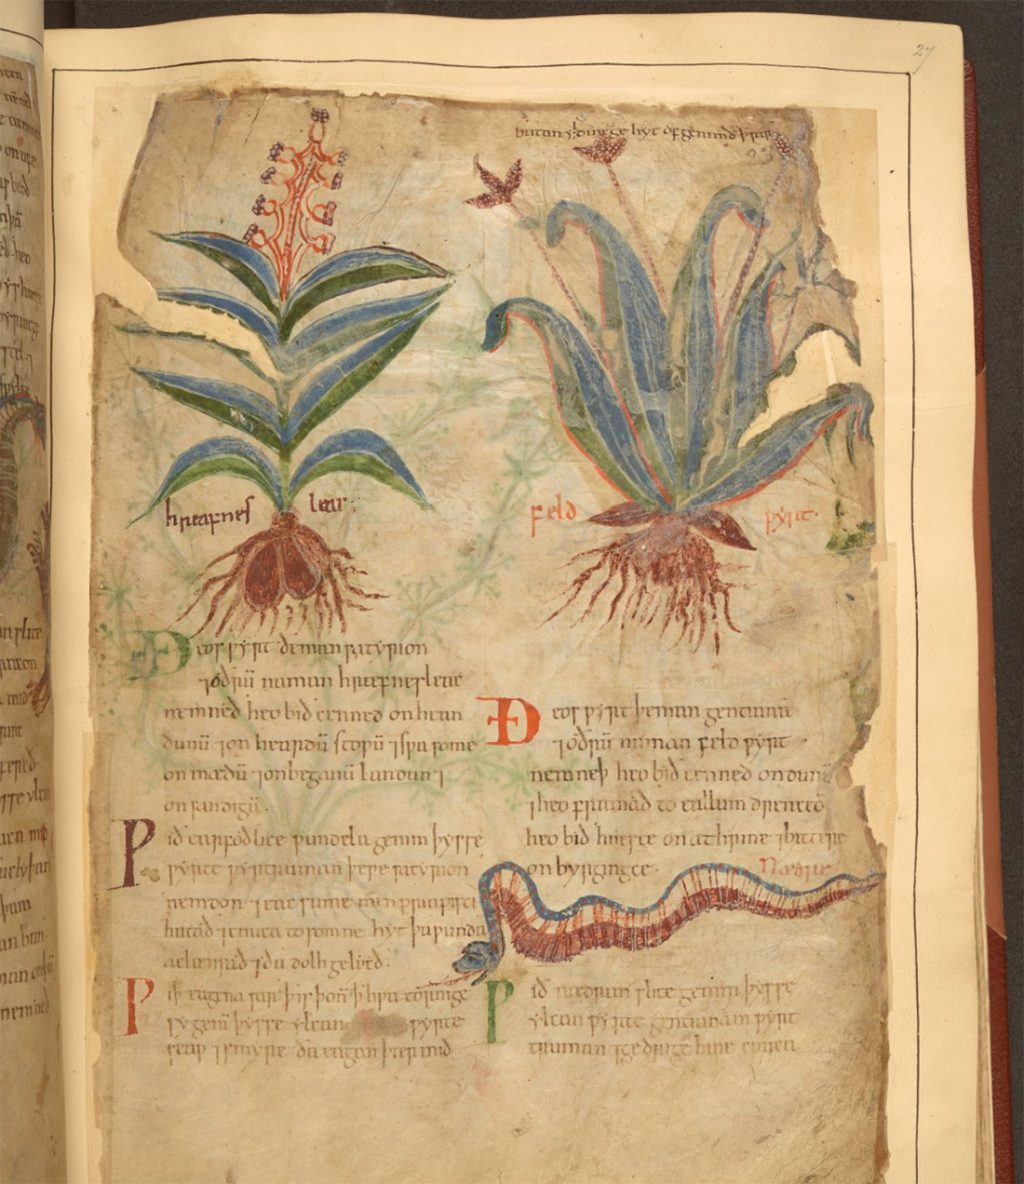 Digitally Explore a 1,000-Year-Old Illustrated Guide to Plants and Their Medical Uses